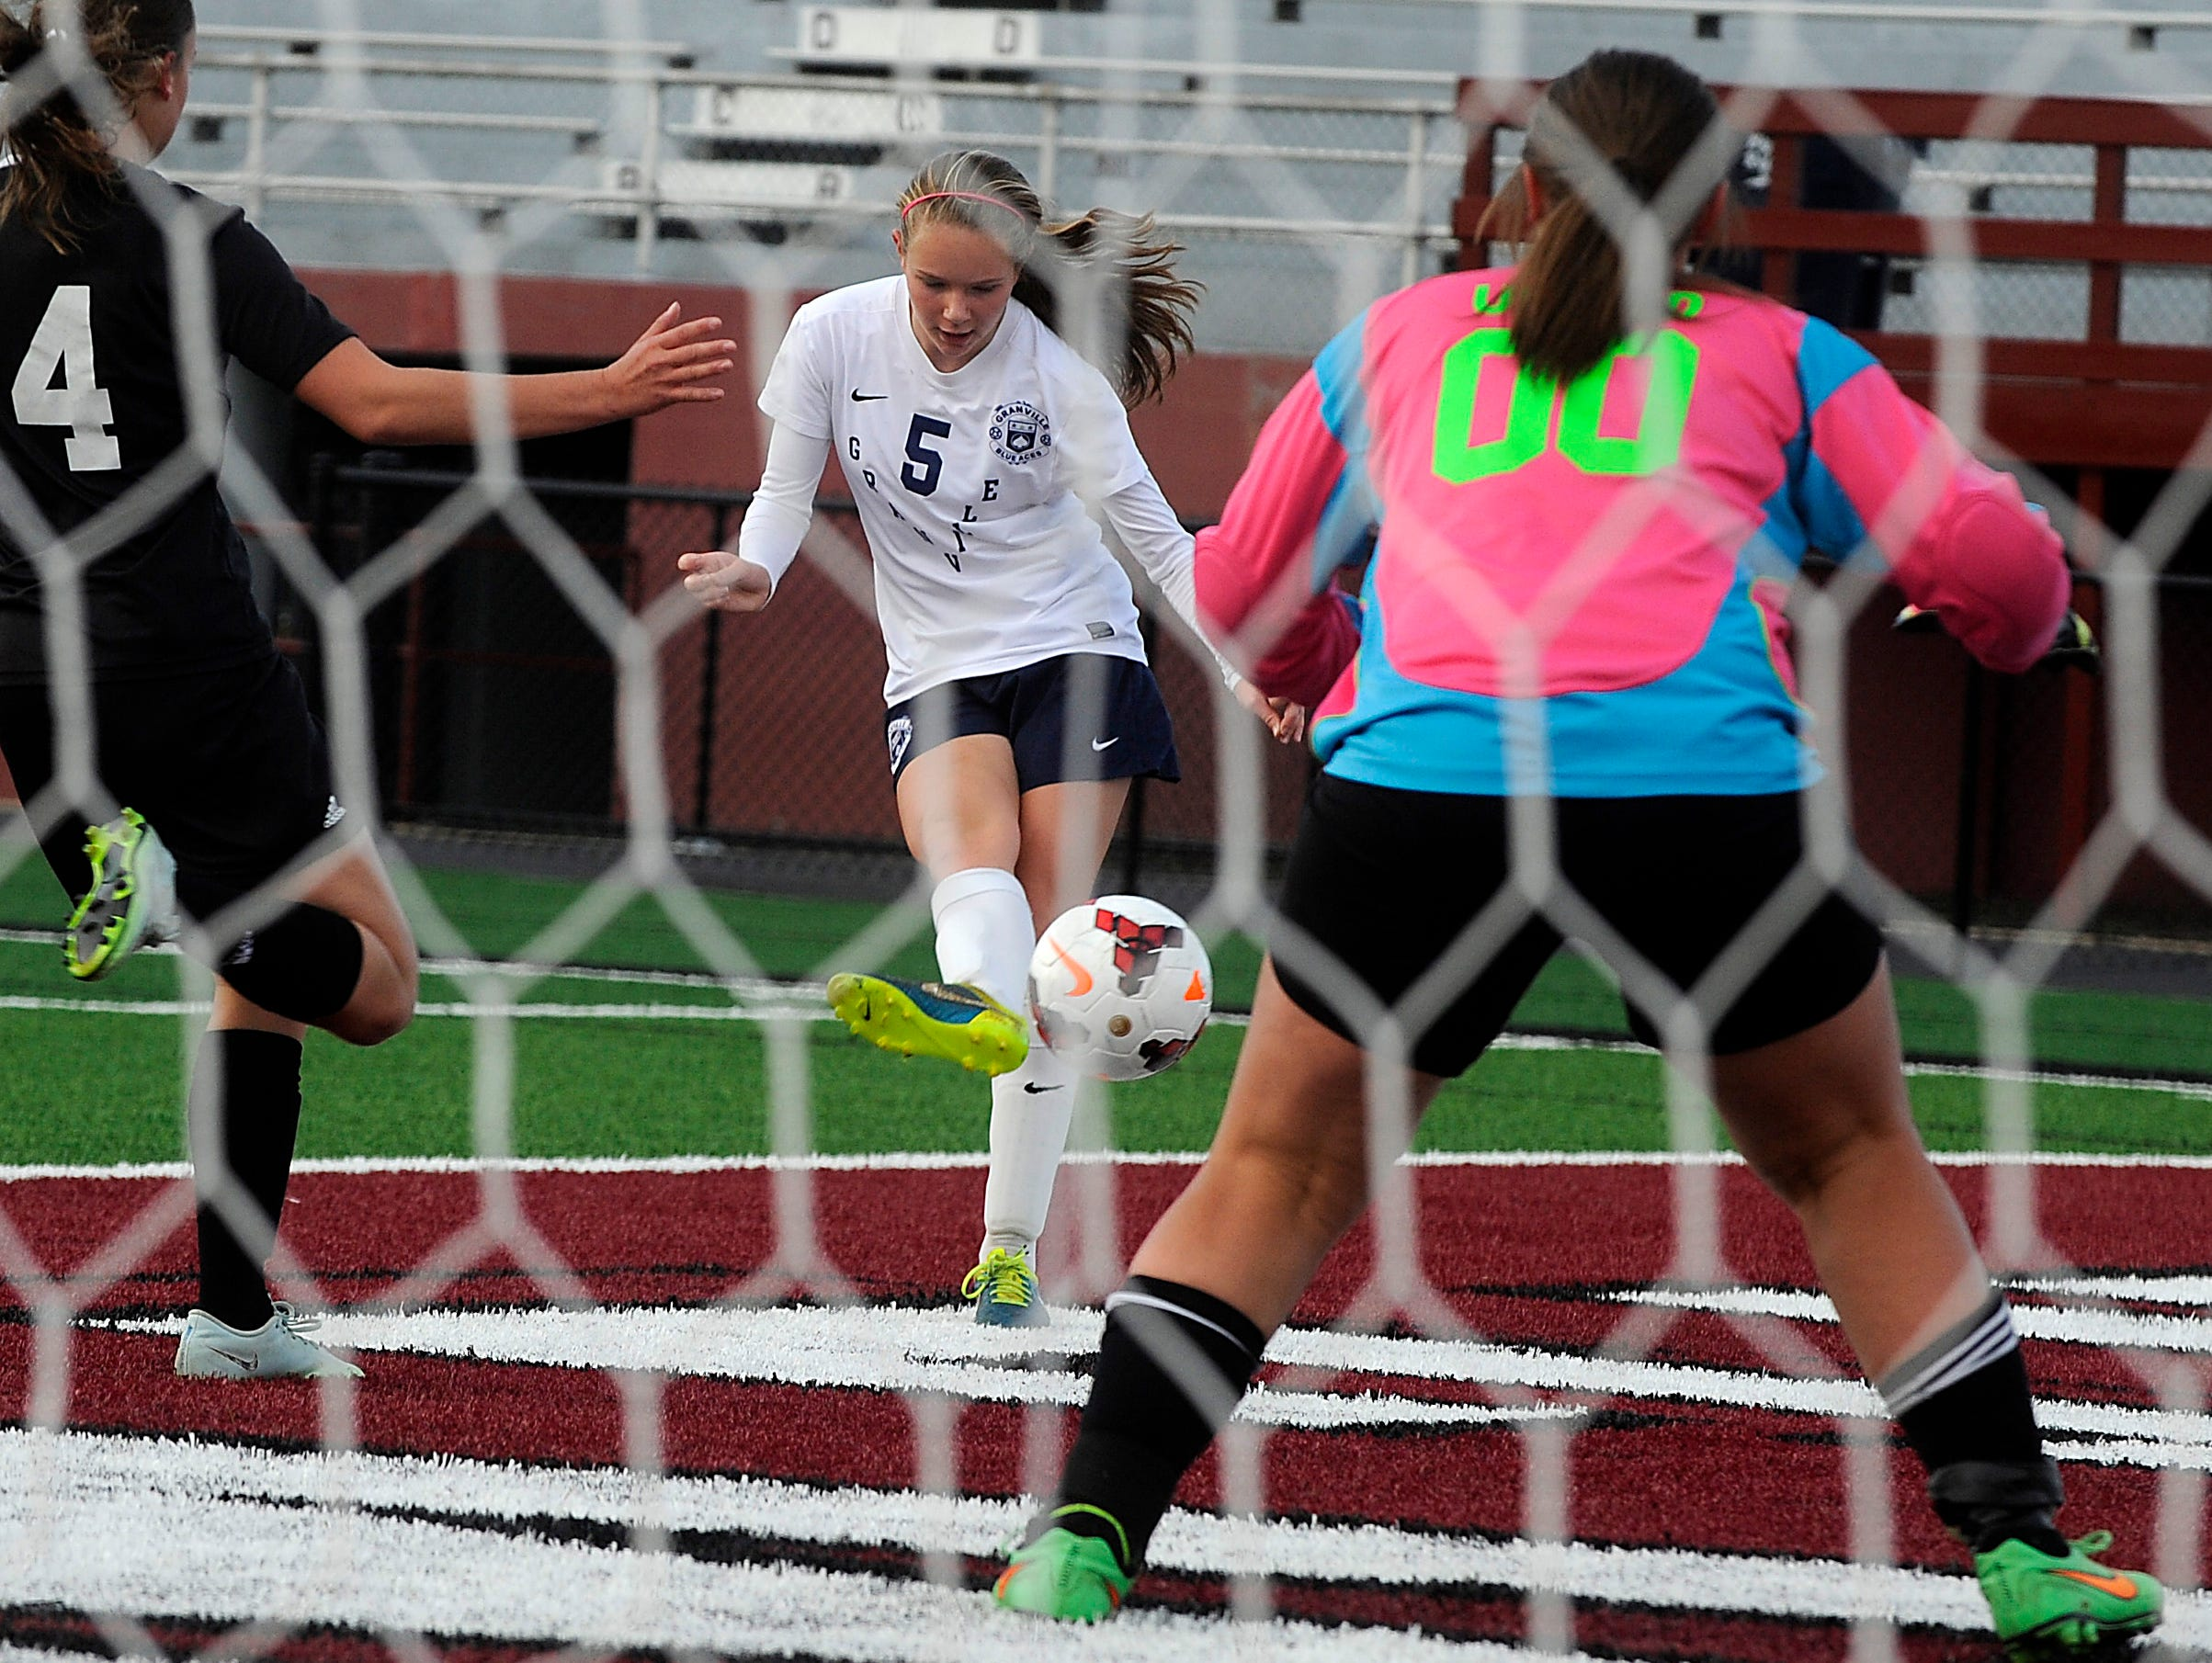 Granville's Gracie Dennison takes a shot on goal against defense from Tri-Valley's Liken Little and keeper Emily Untied. Granville defeated Tri-Valley 10-1 in the Division II regional final on Saturday, Nov. 7, 2015, at White Field in Newark. The Blue Aces will advance to play Indian Hill in the state tournament.